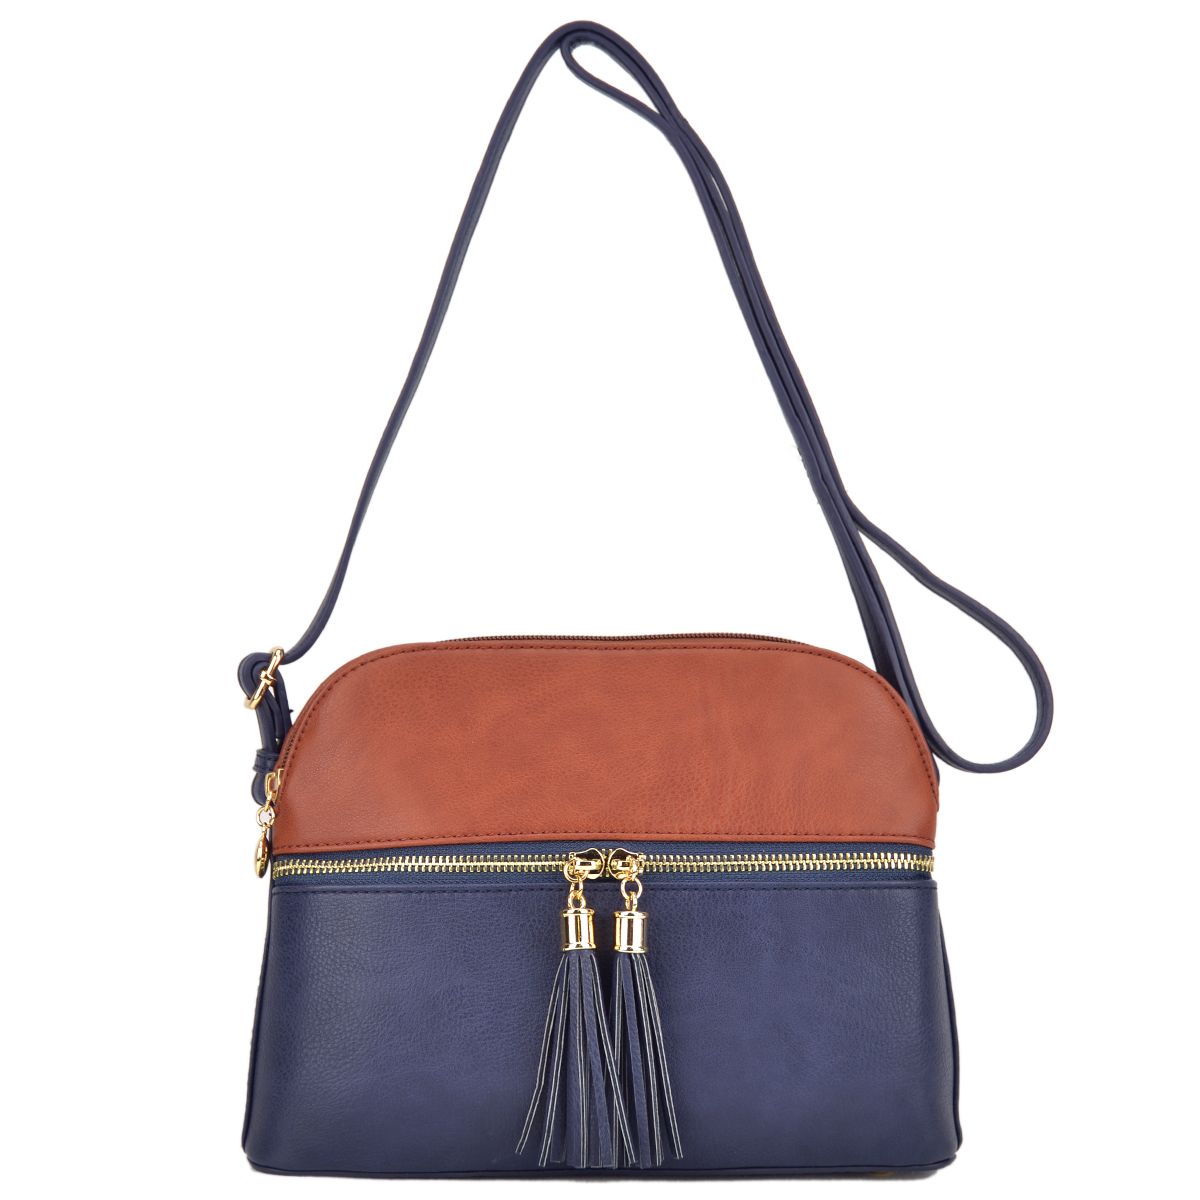 All-In-One Crossbody/ Messenger Bag with Decorative Tassel